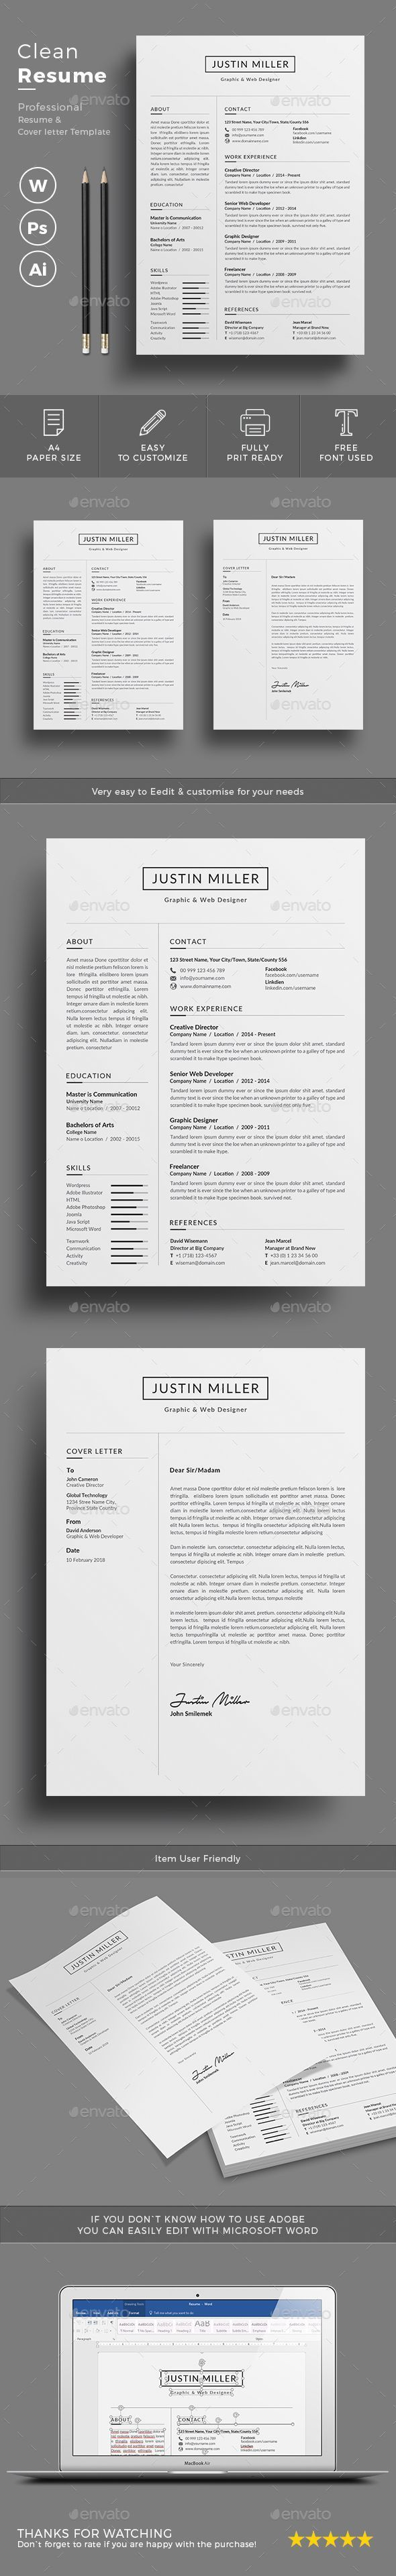 medical billing resumes%0A  Resume  Resumes Stationery Download here  https   graphicriver net